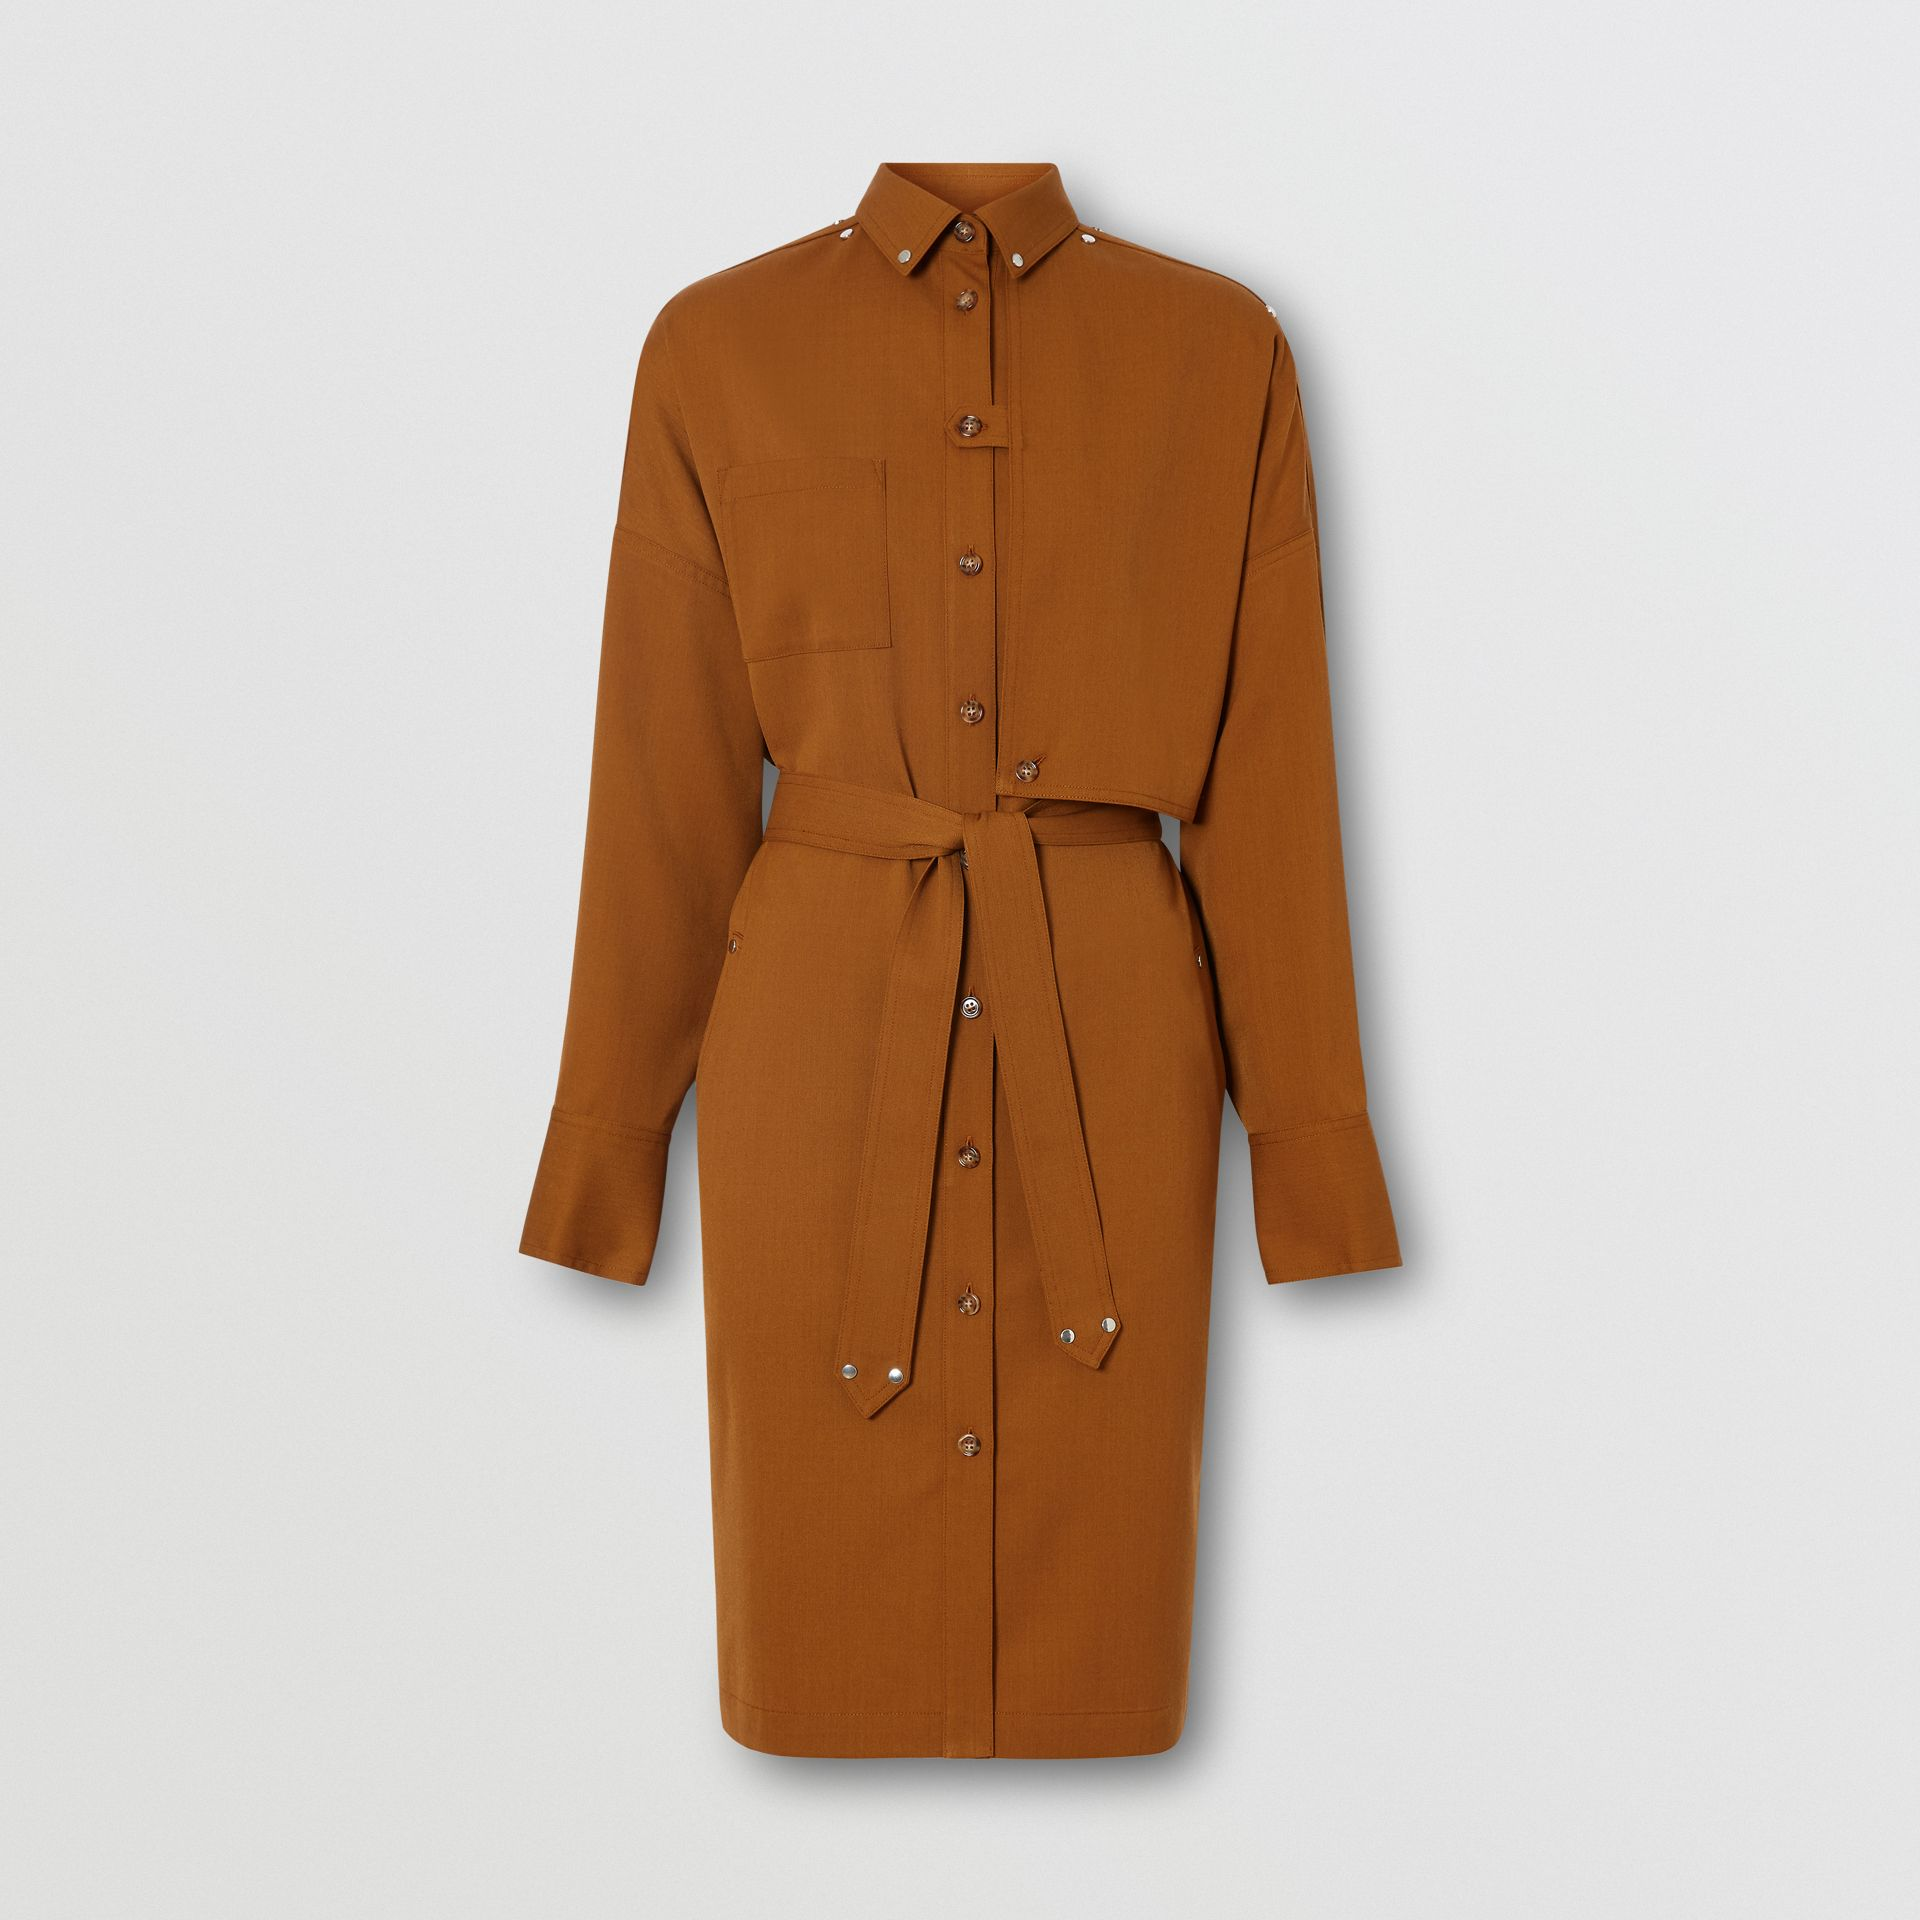 Wool Twill Blend Belted Shirt Dress in Maple - Women | Burberry United Kingdom - gallery image 3